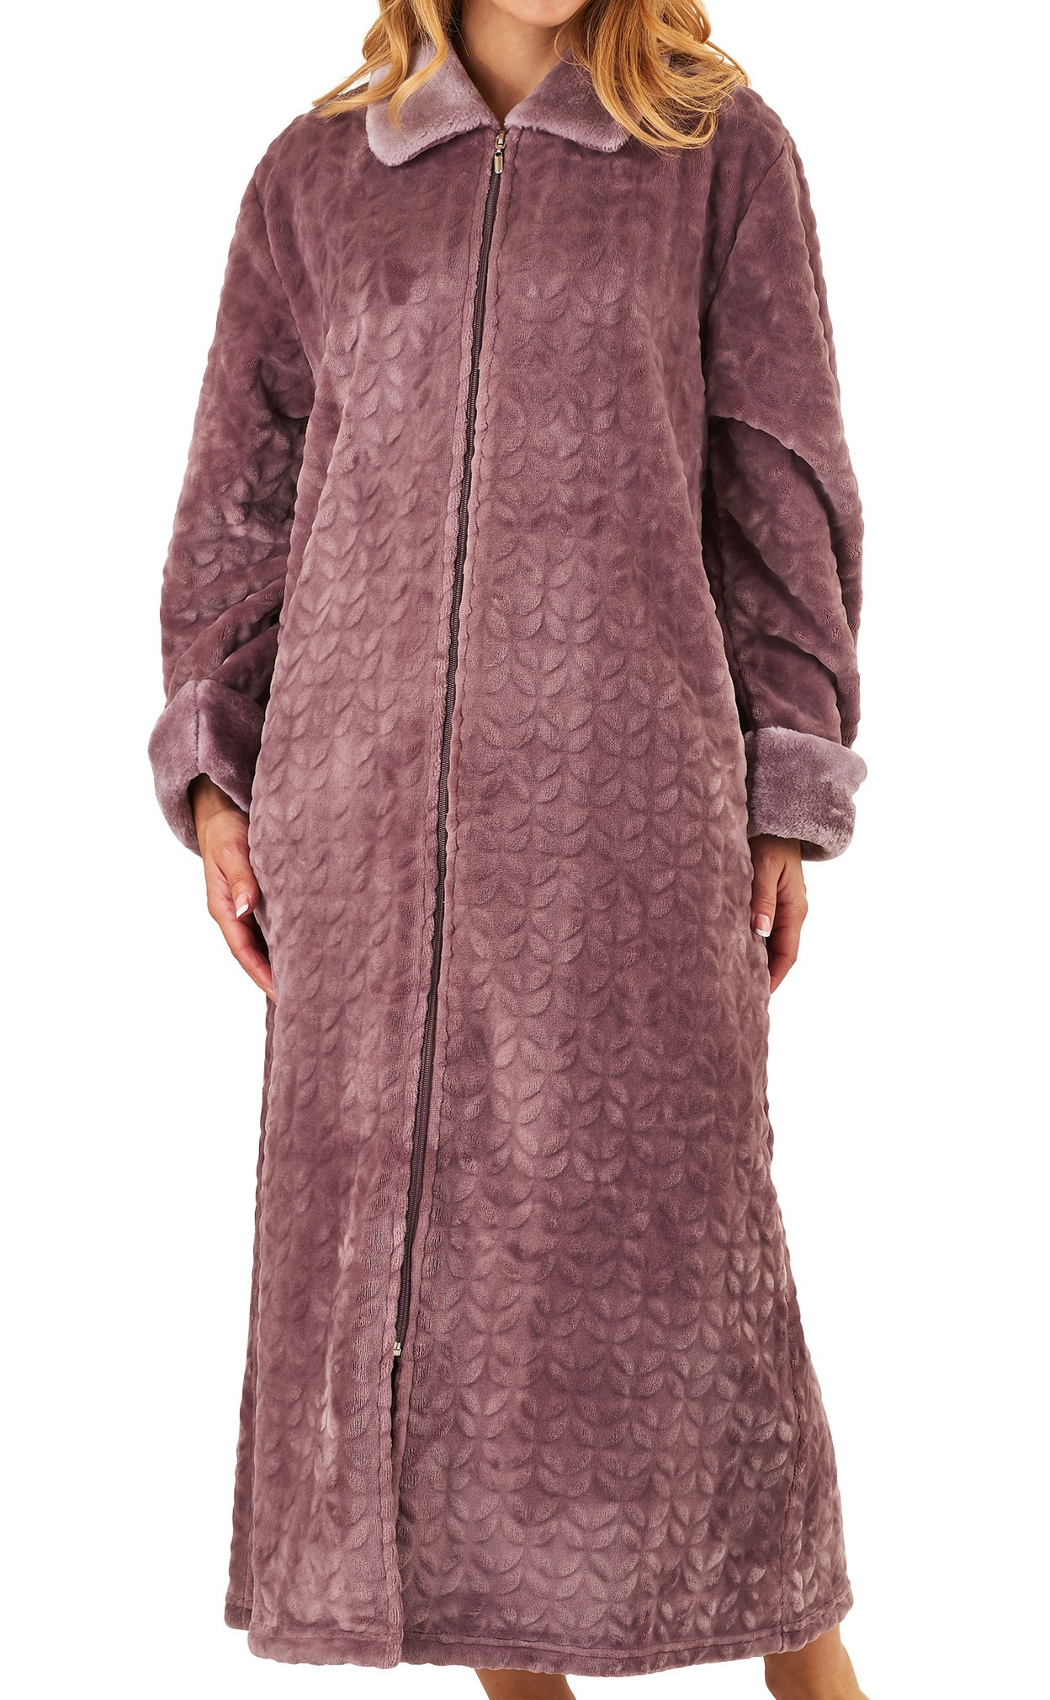 Dressing Gown Womens Soft Faux Fur Zip Up Bathrobe Slenderella ...